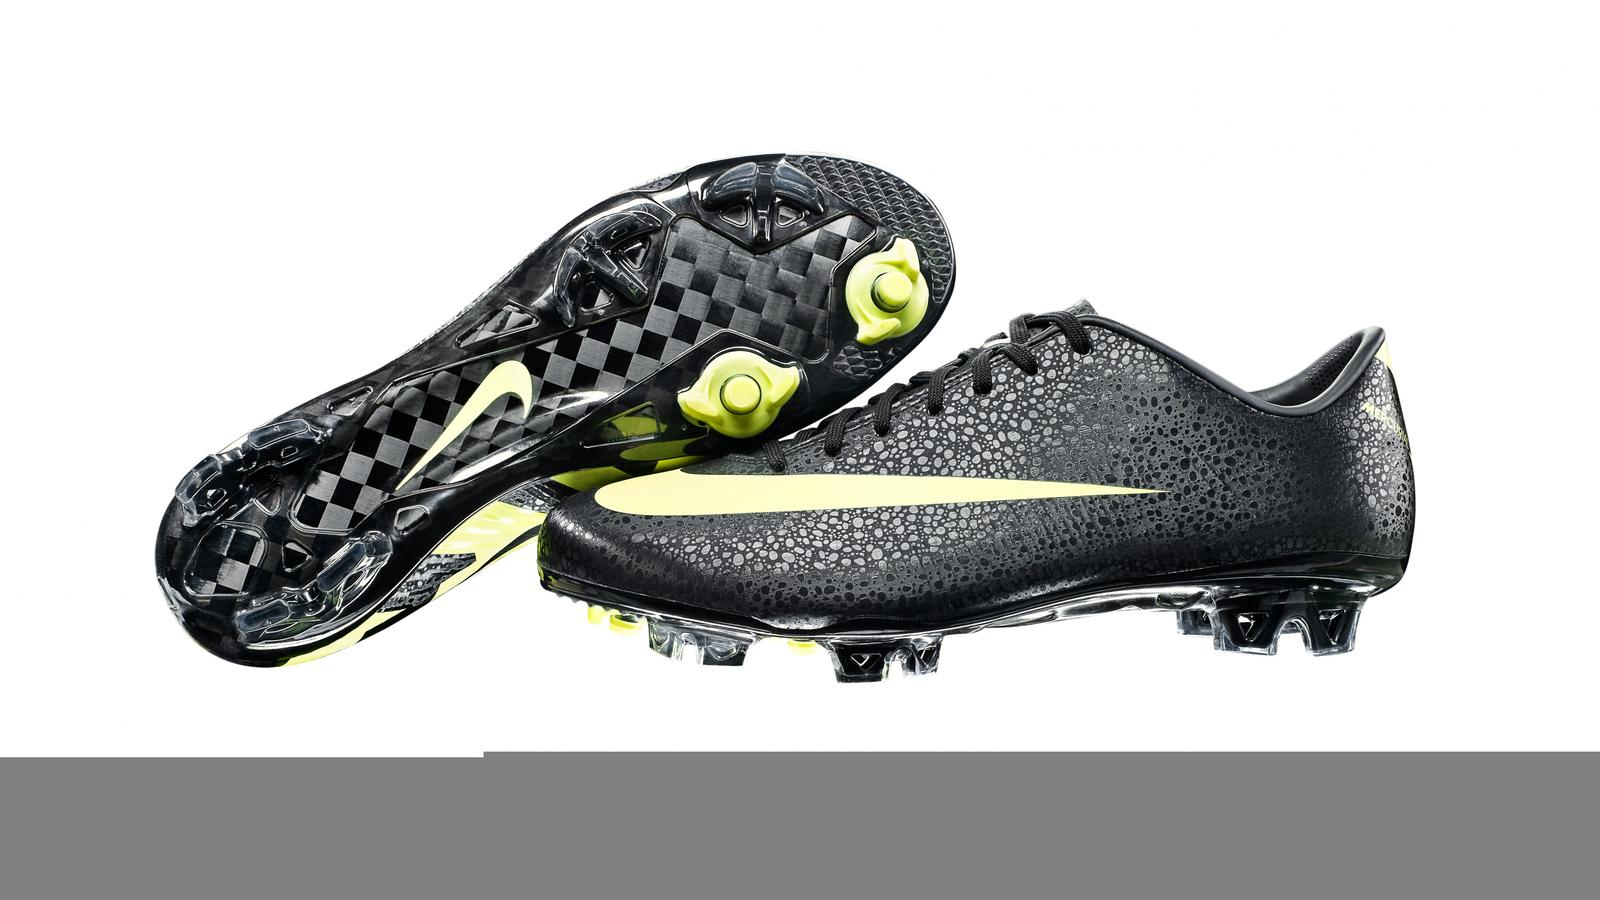 M31_NIKE _VAPOR_SUPERFLY 35276